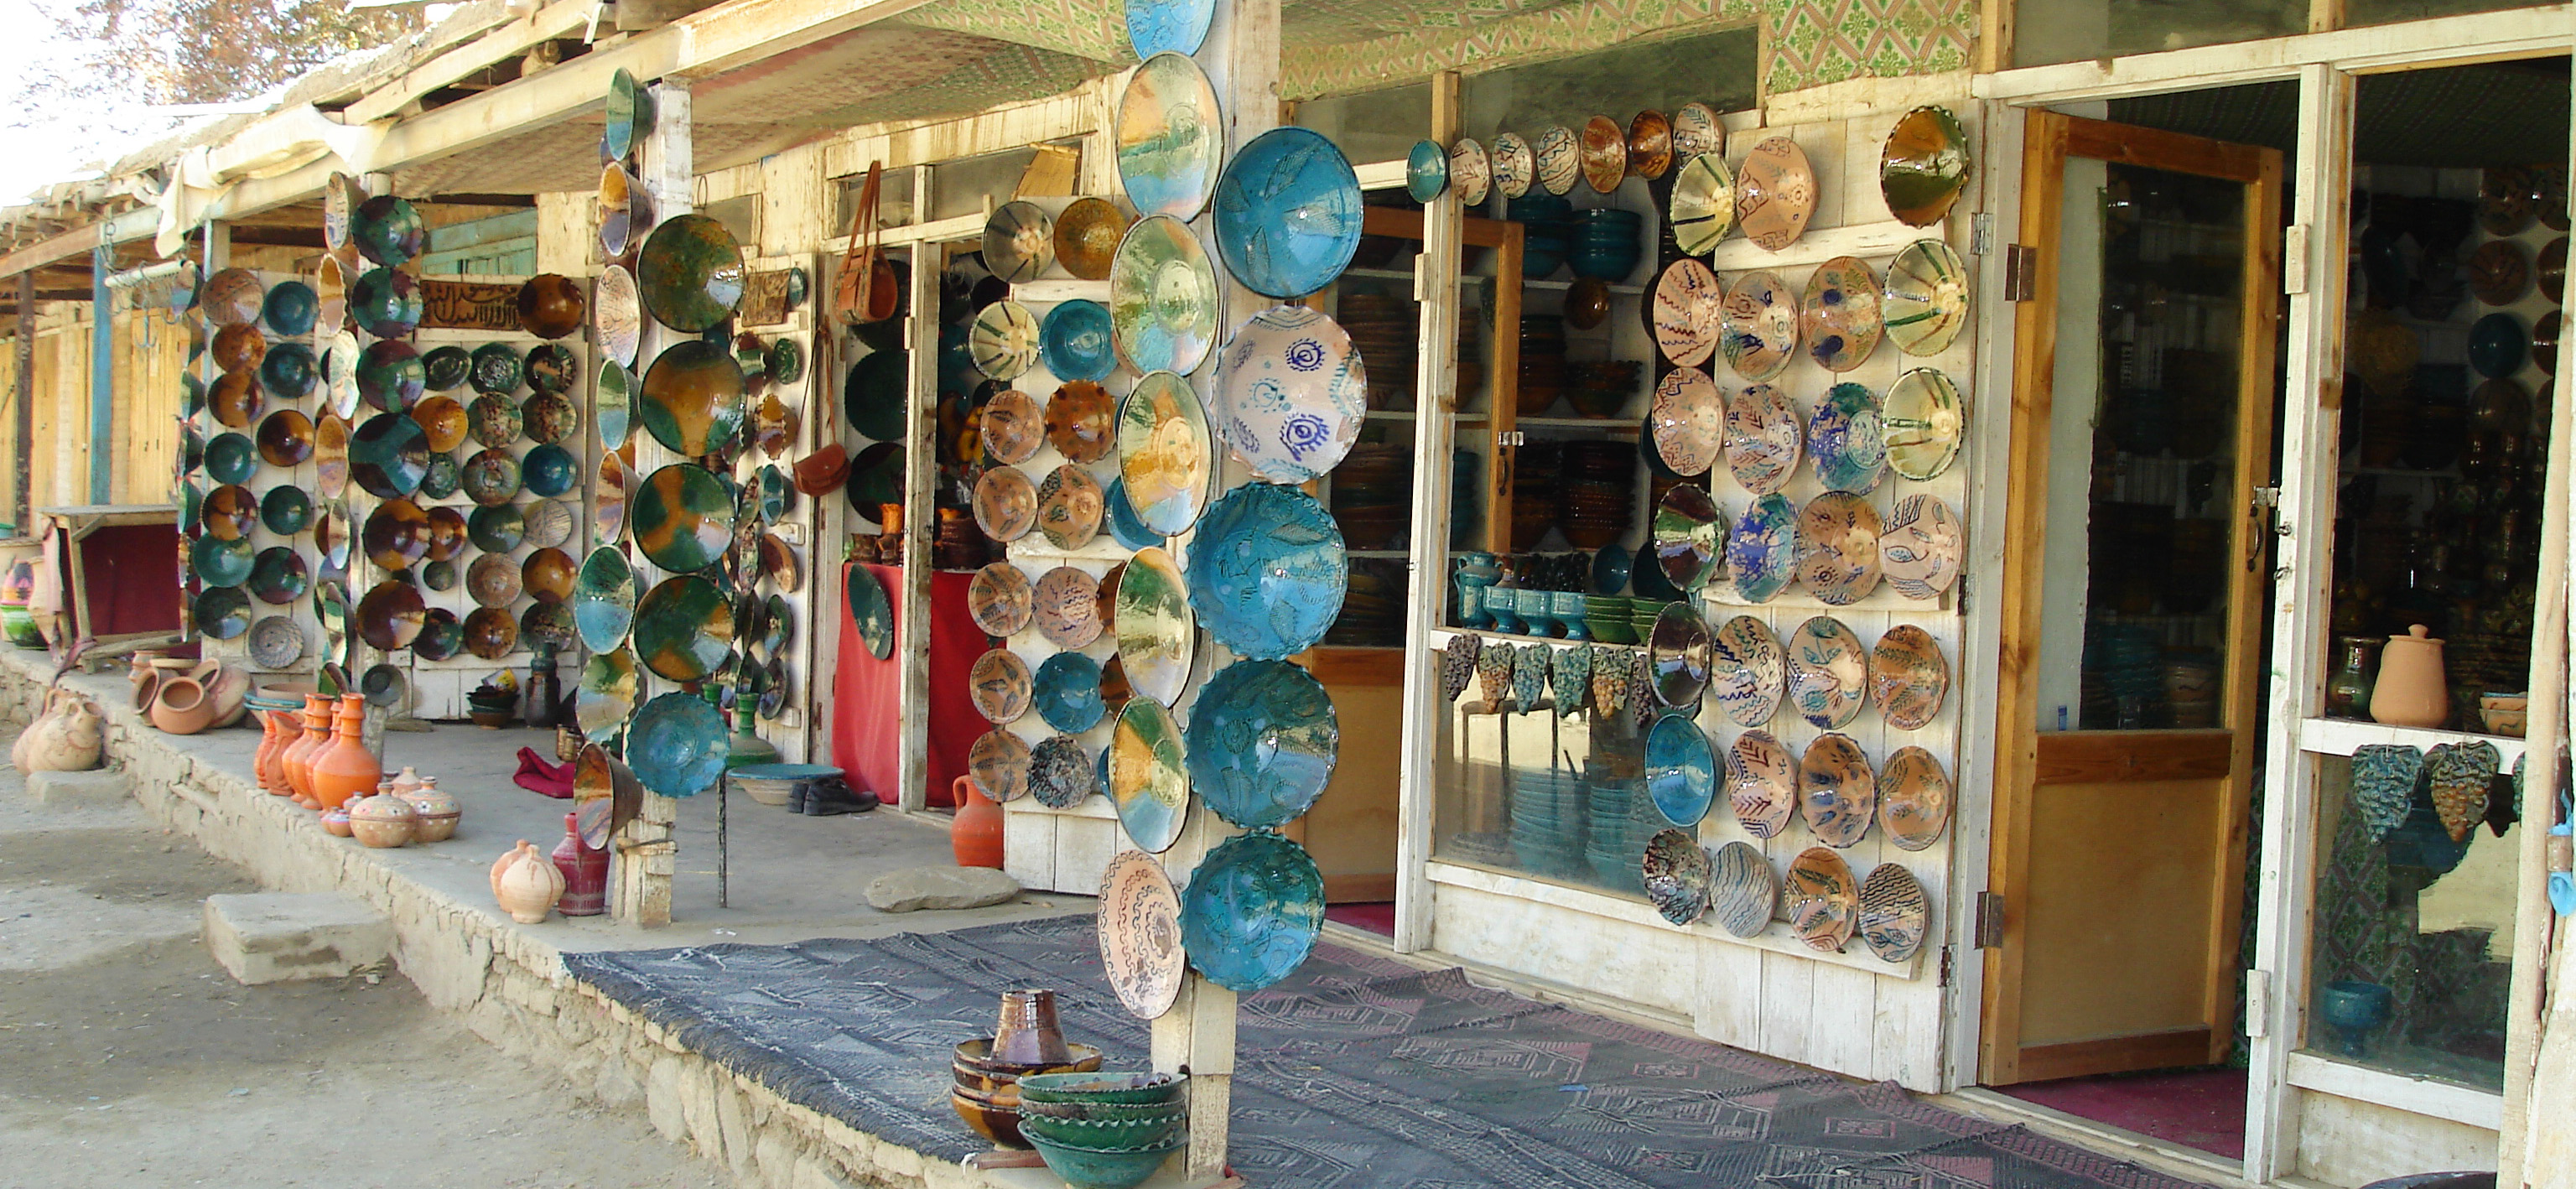 Istalif pottery on display in Istalif, Afghanistan